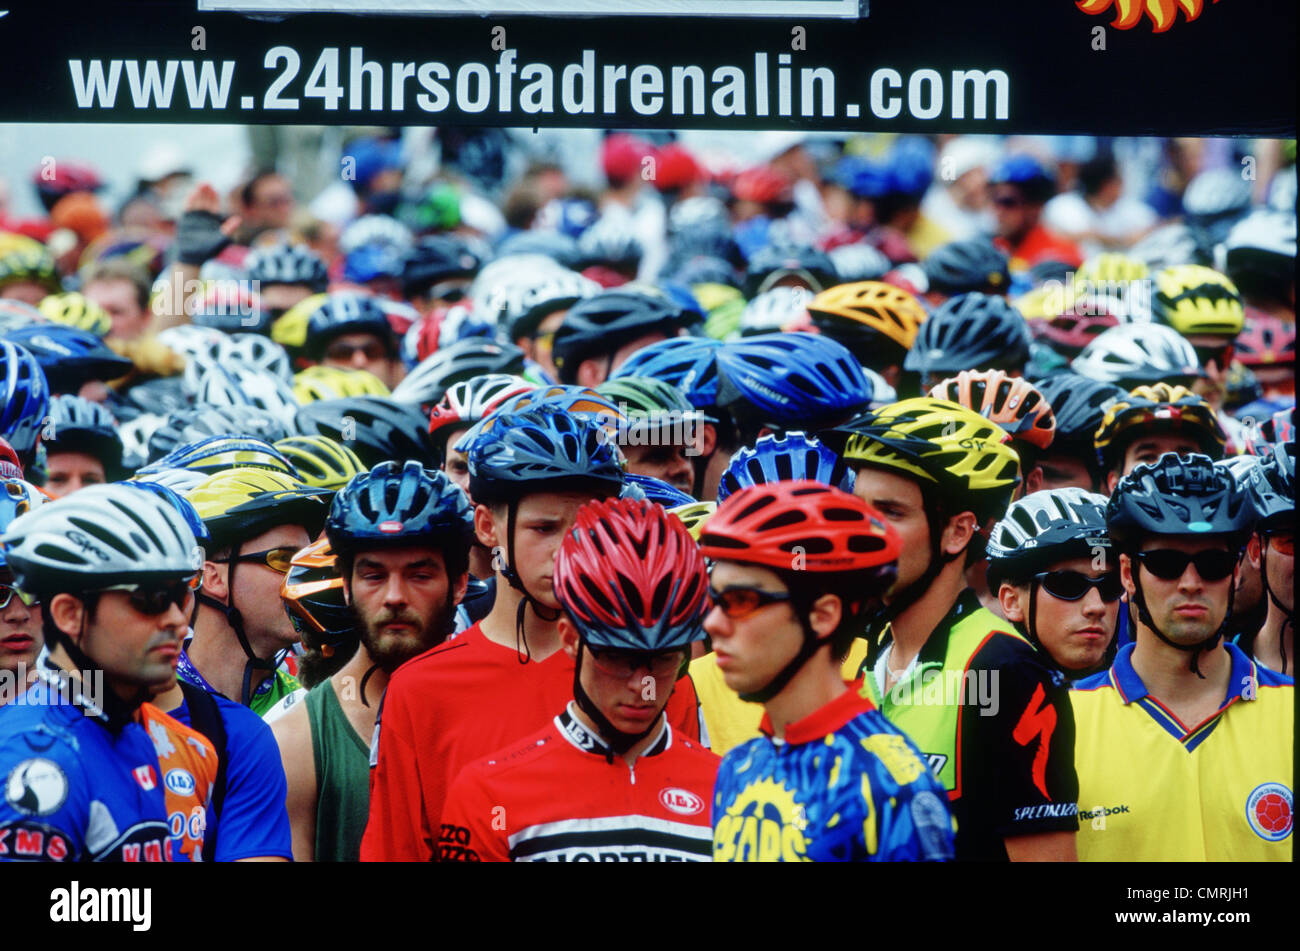 Participants gather for the annual 24 Hours of Adrenalin mountain Bike event, Toronto, Ontario. - Stock Image